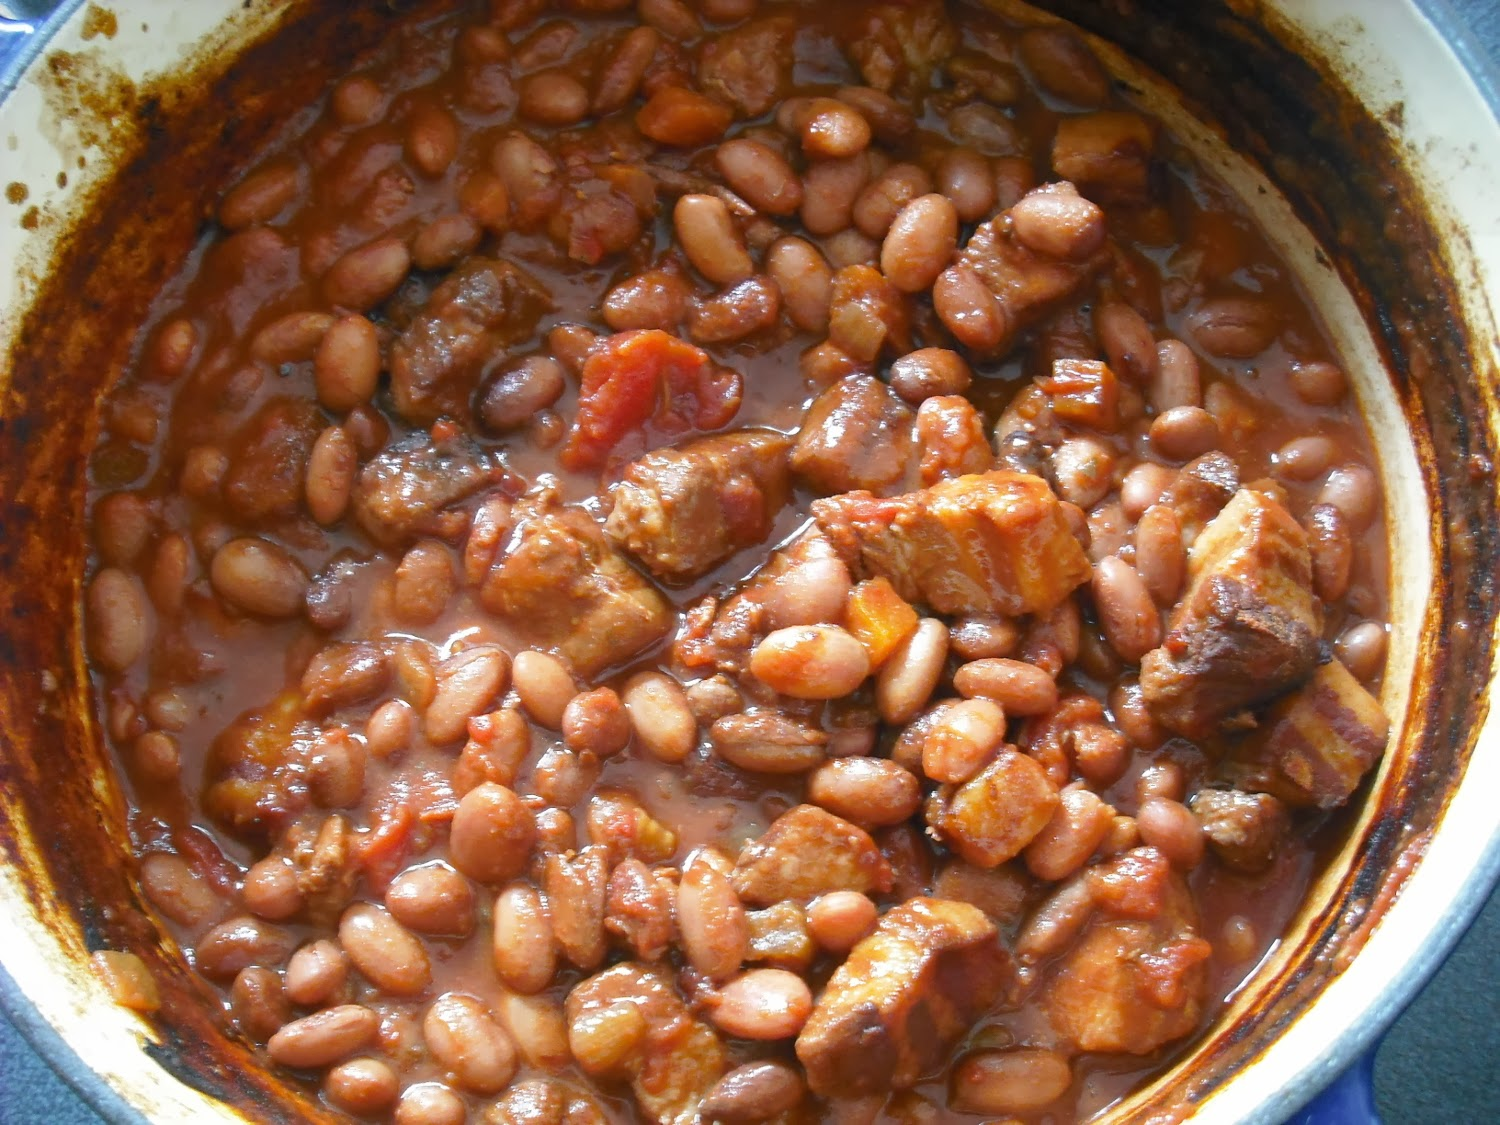 Foodycat: Baked beans